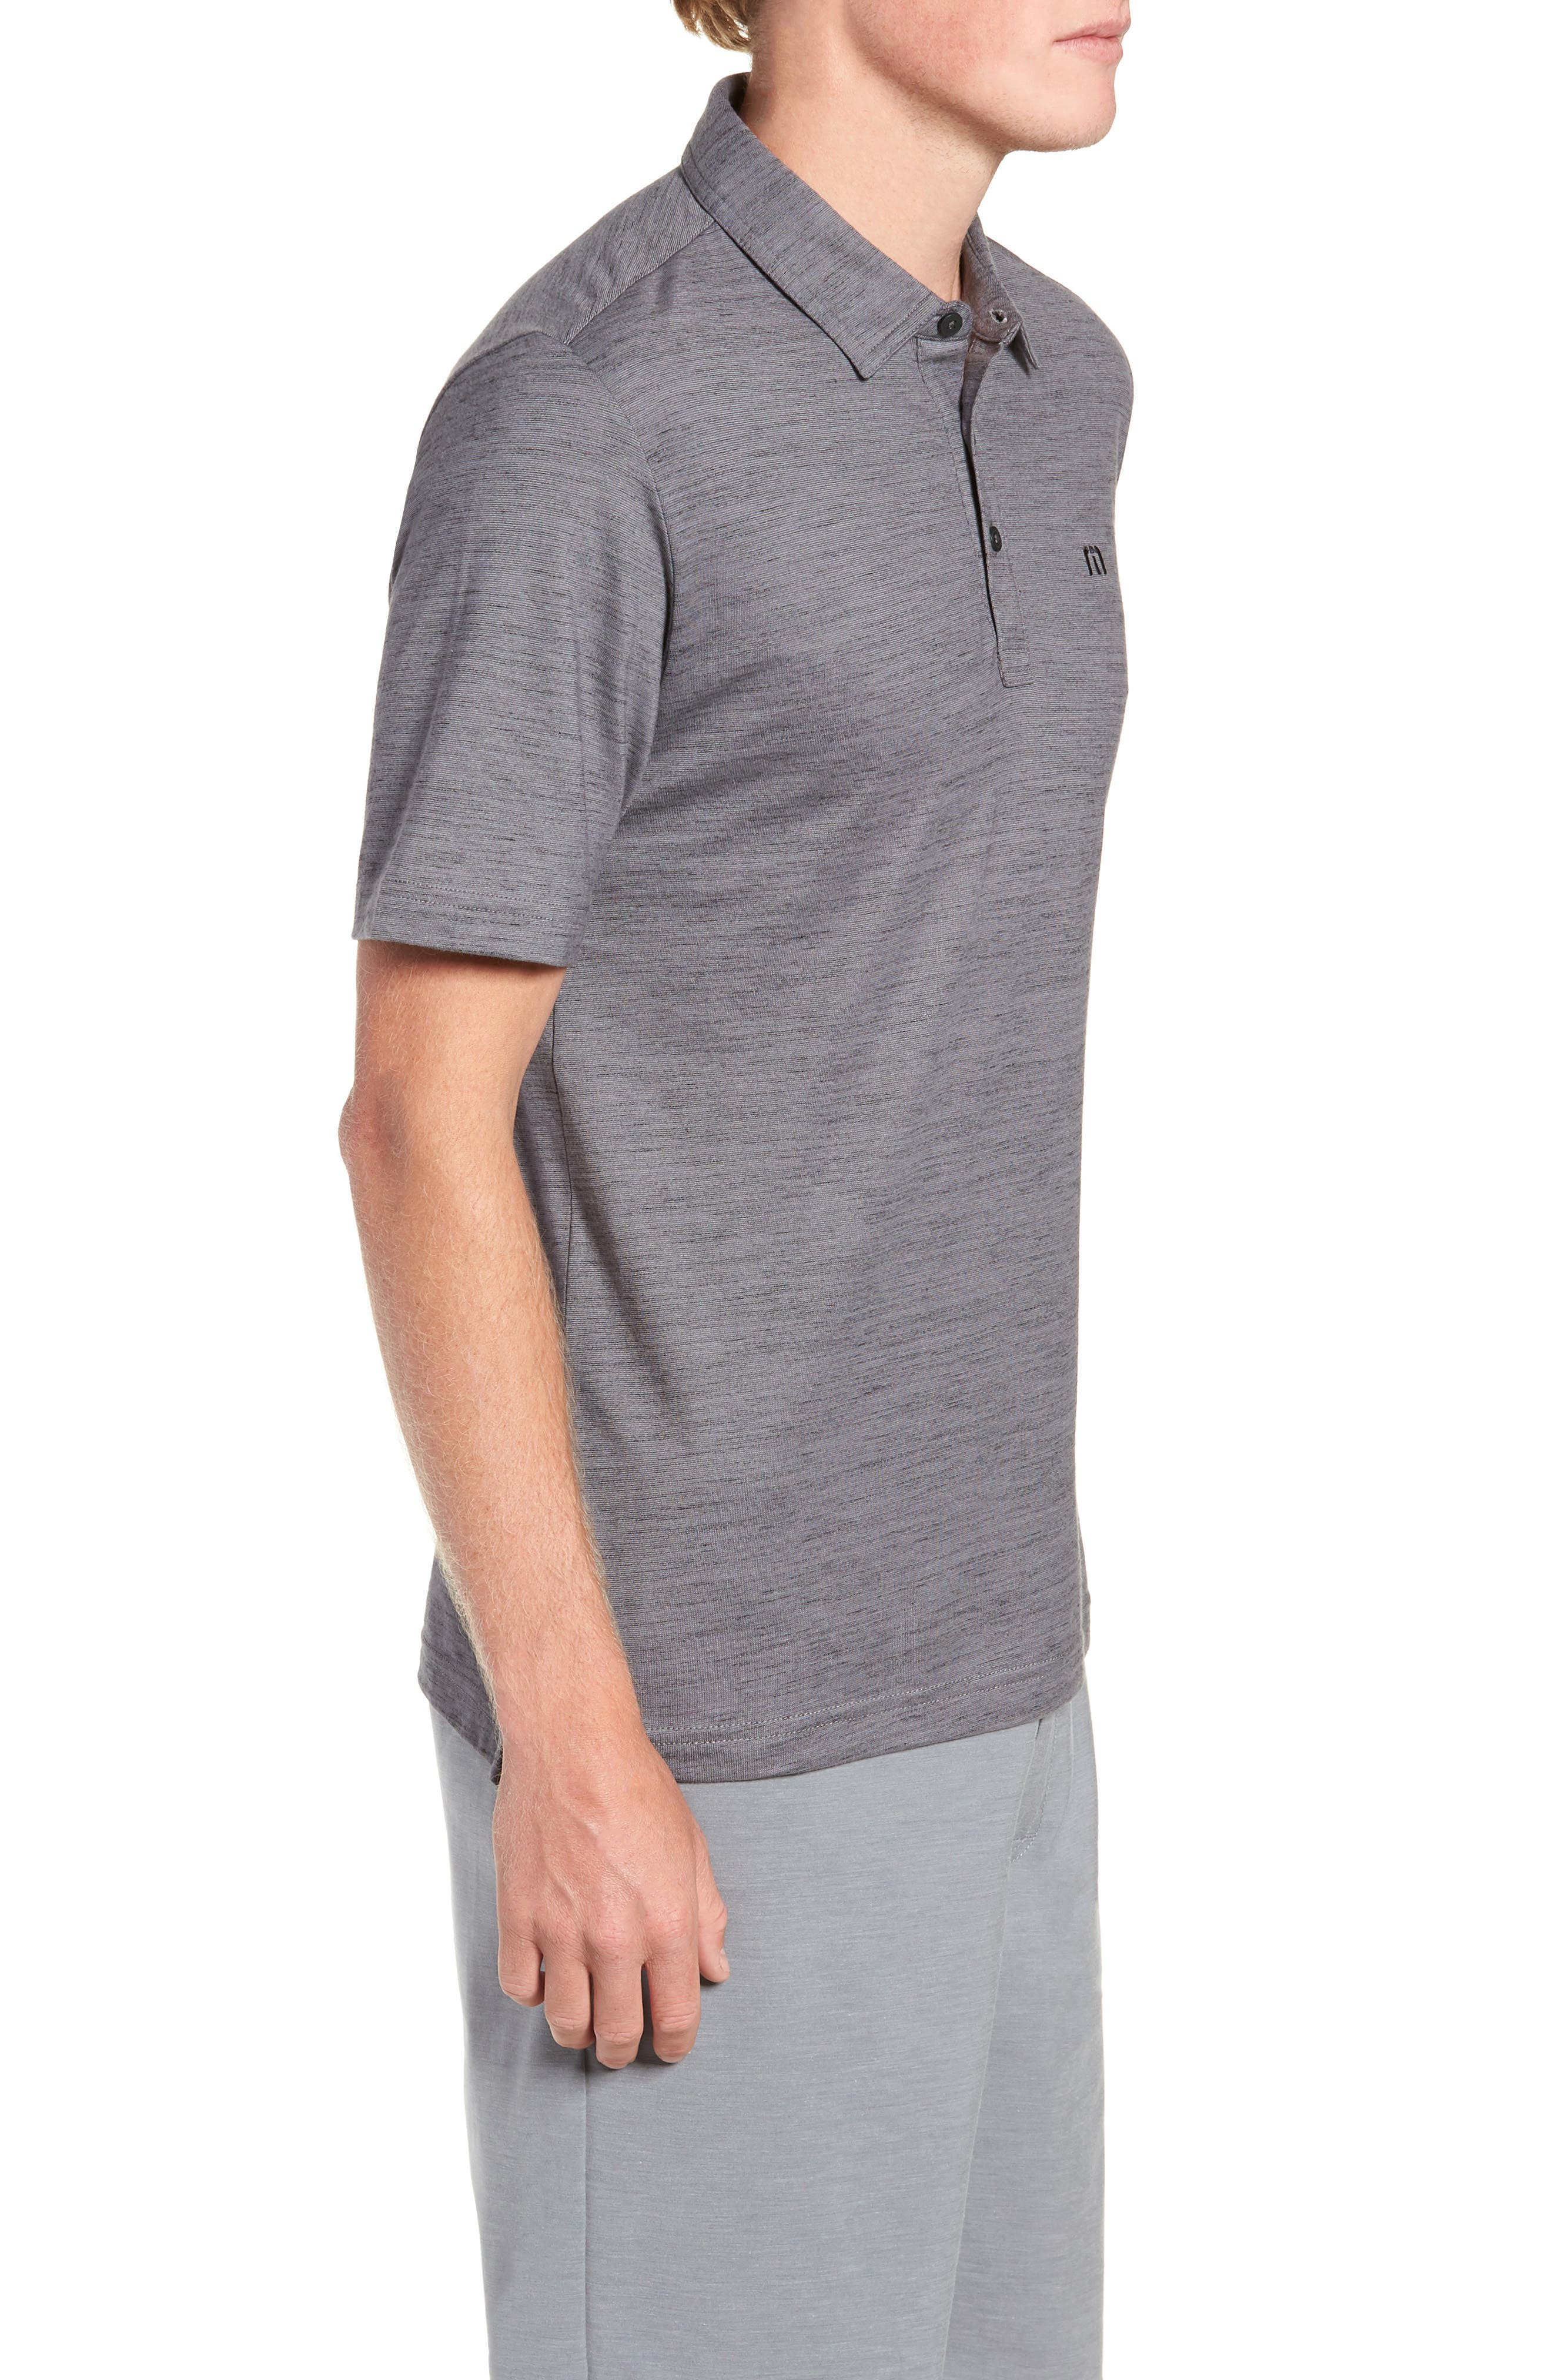 Flying Tortilla Regular Fit Performance Polo,                             Alternate thumbnail 3, color,                             020